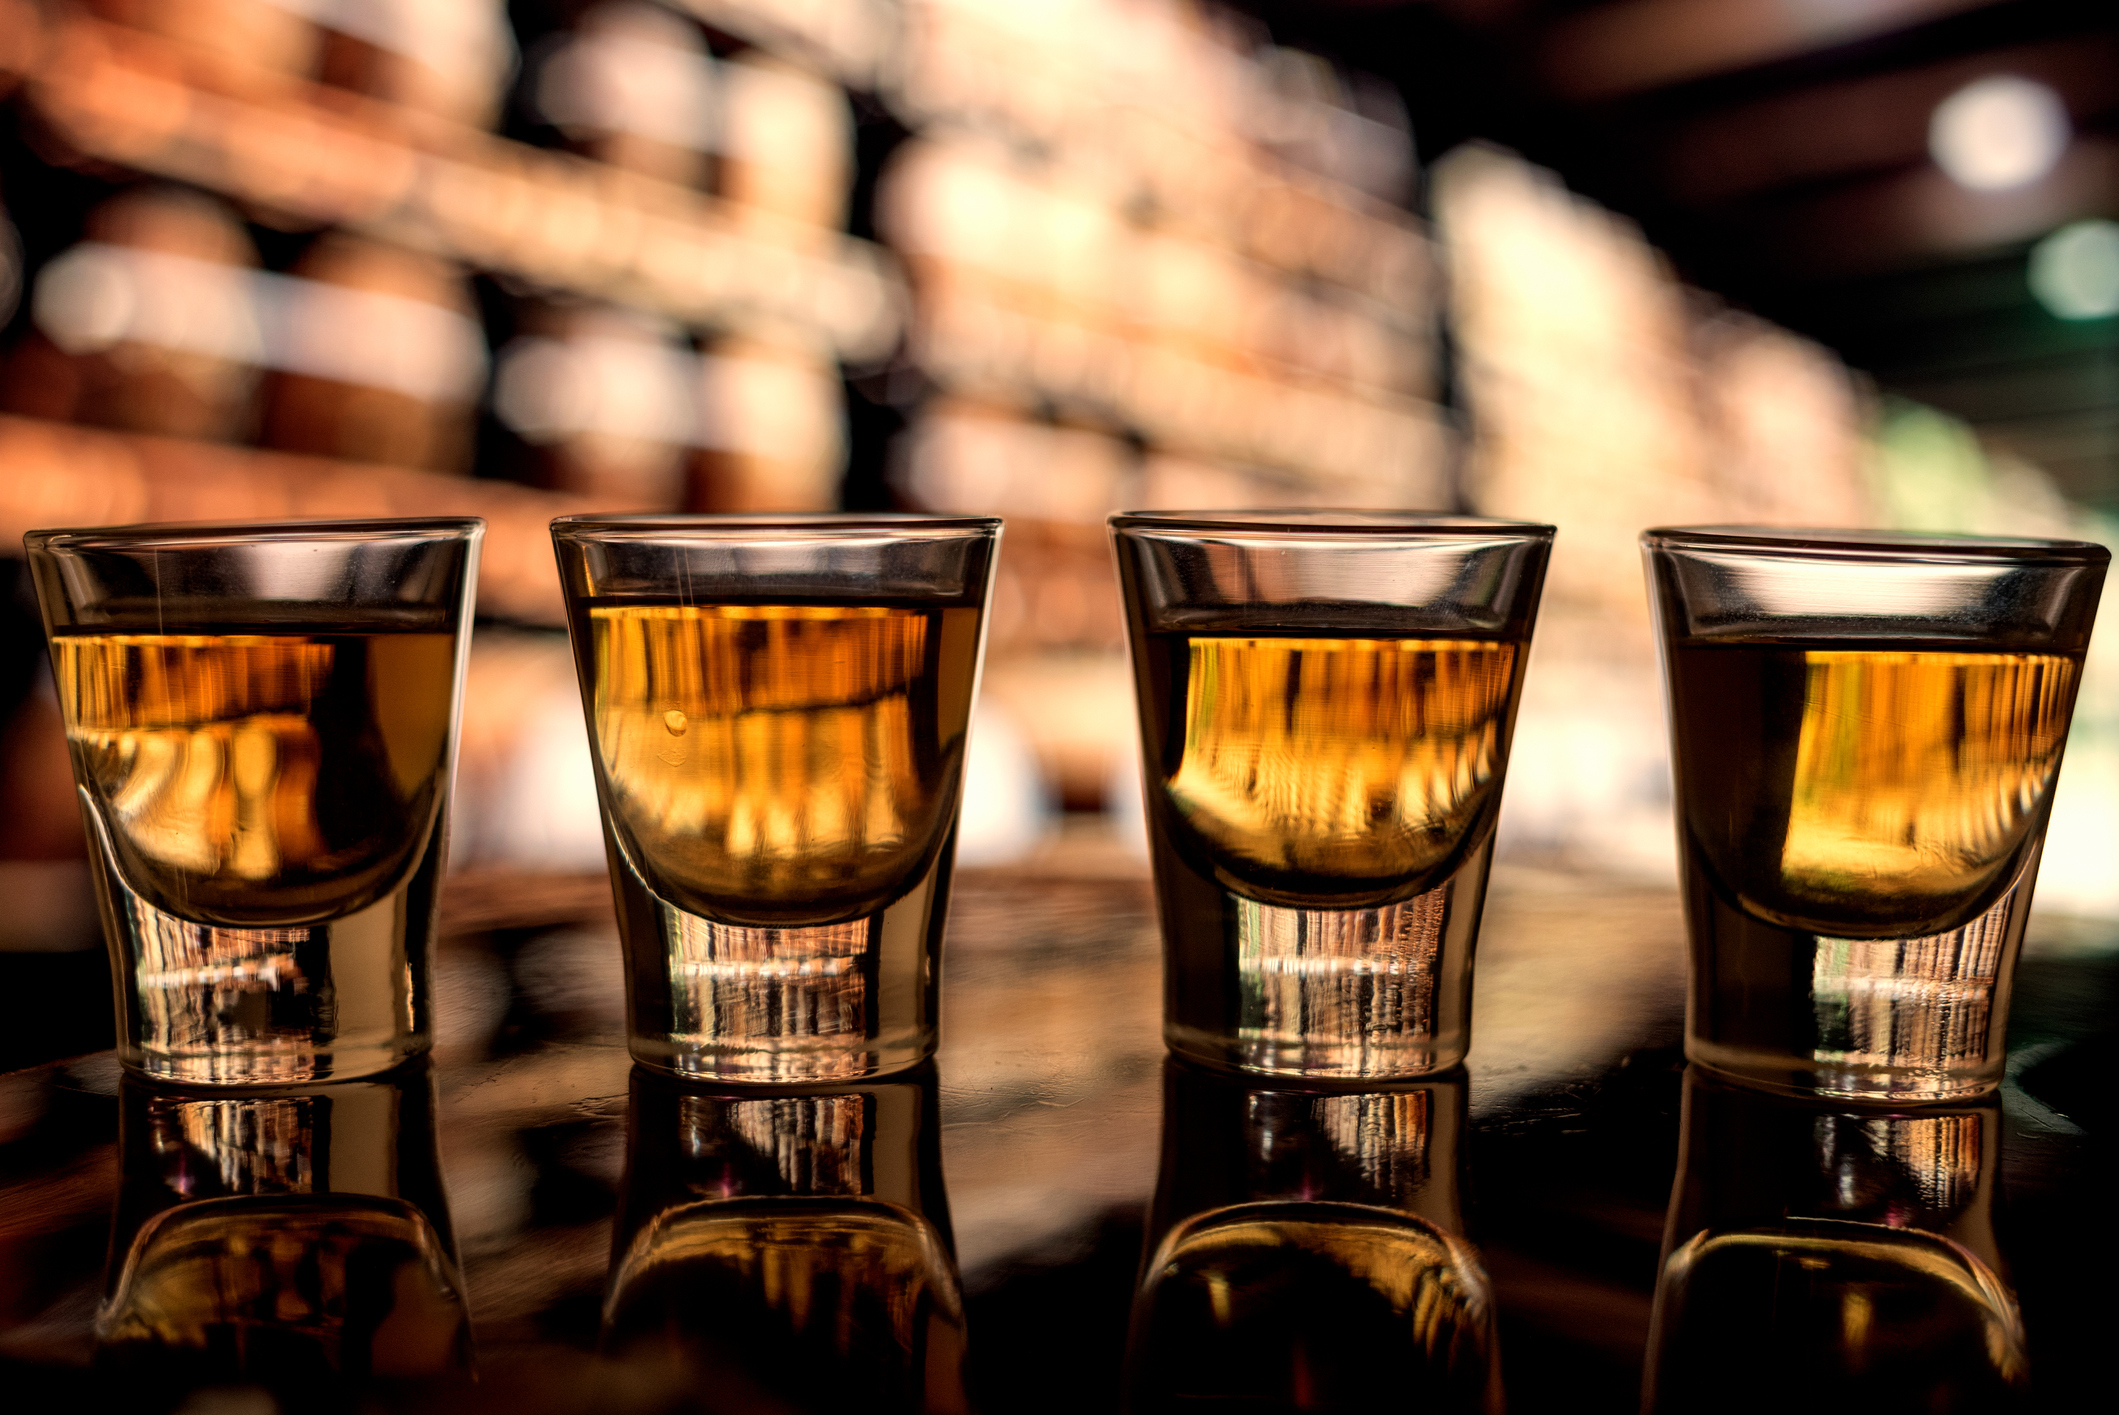 Whiskey shots stock image